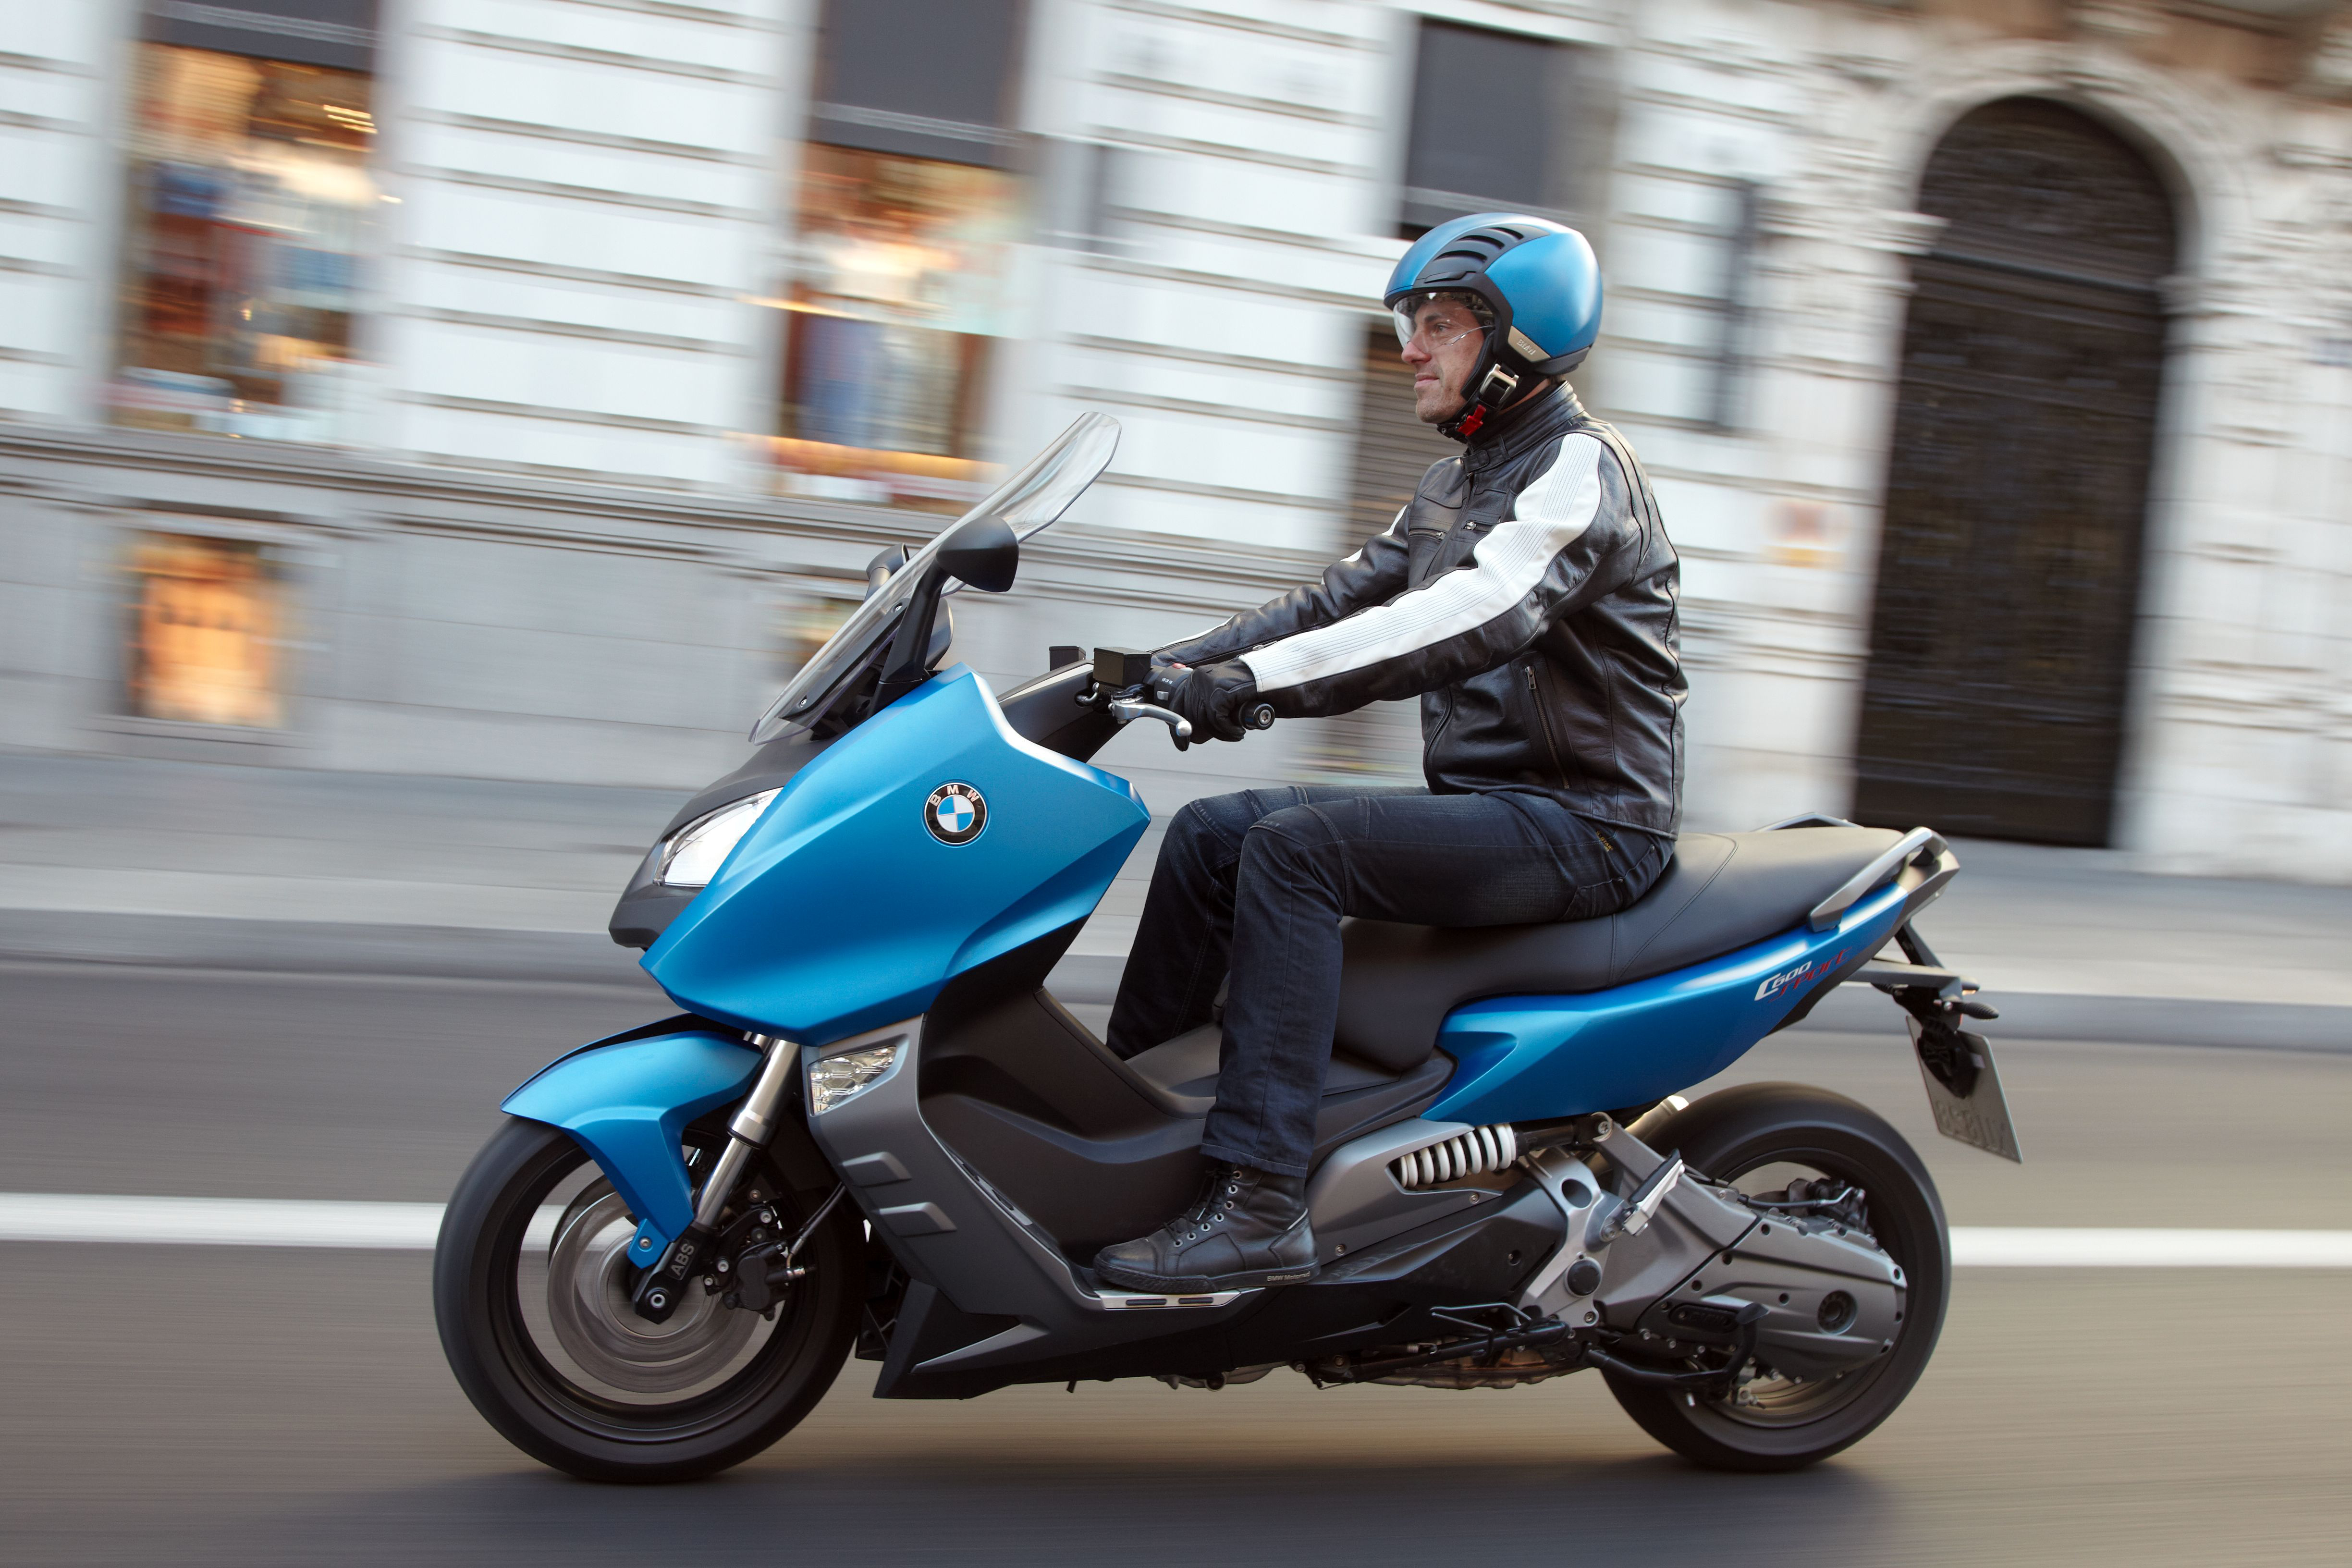 BMW C600 Sport, C650 GT maxi scooters launched Paul Tan ...